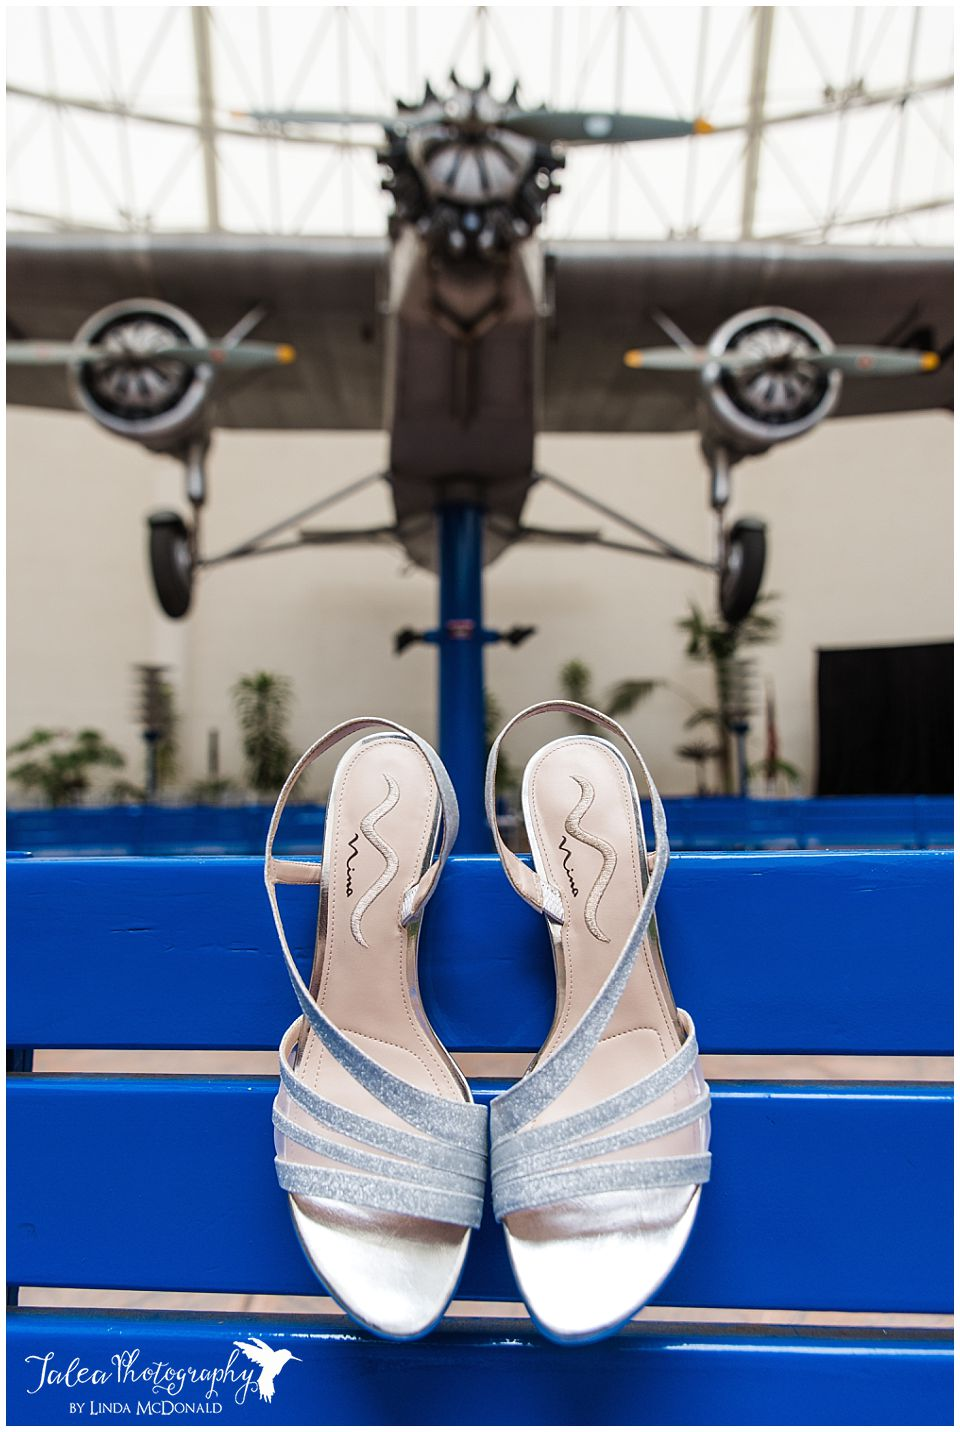 bride's wedding shoes in front of airplane